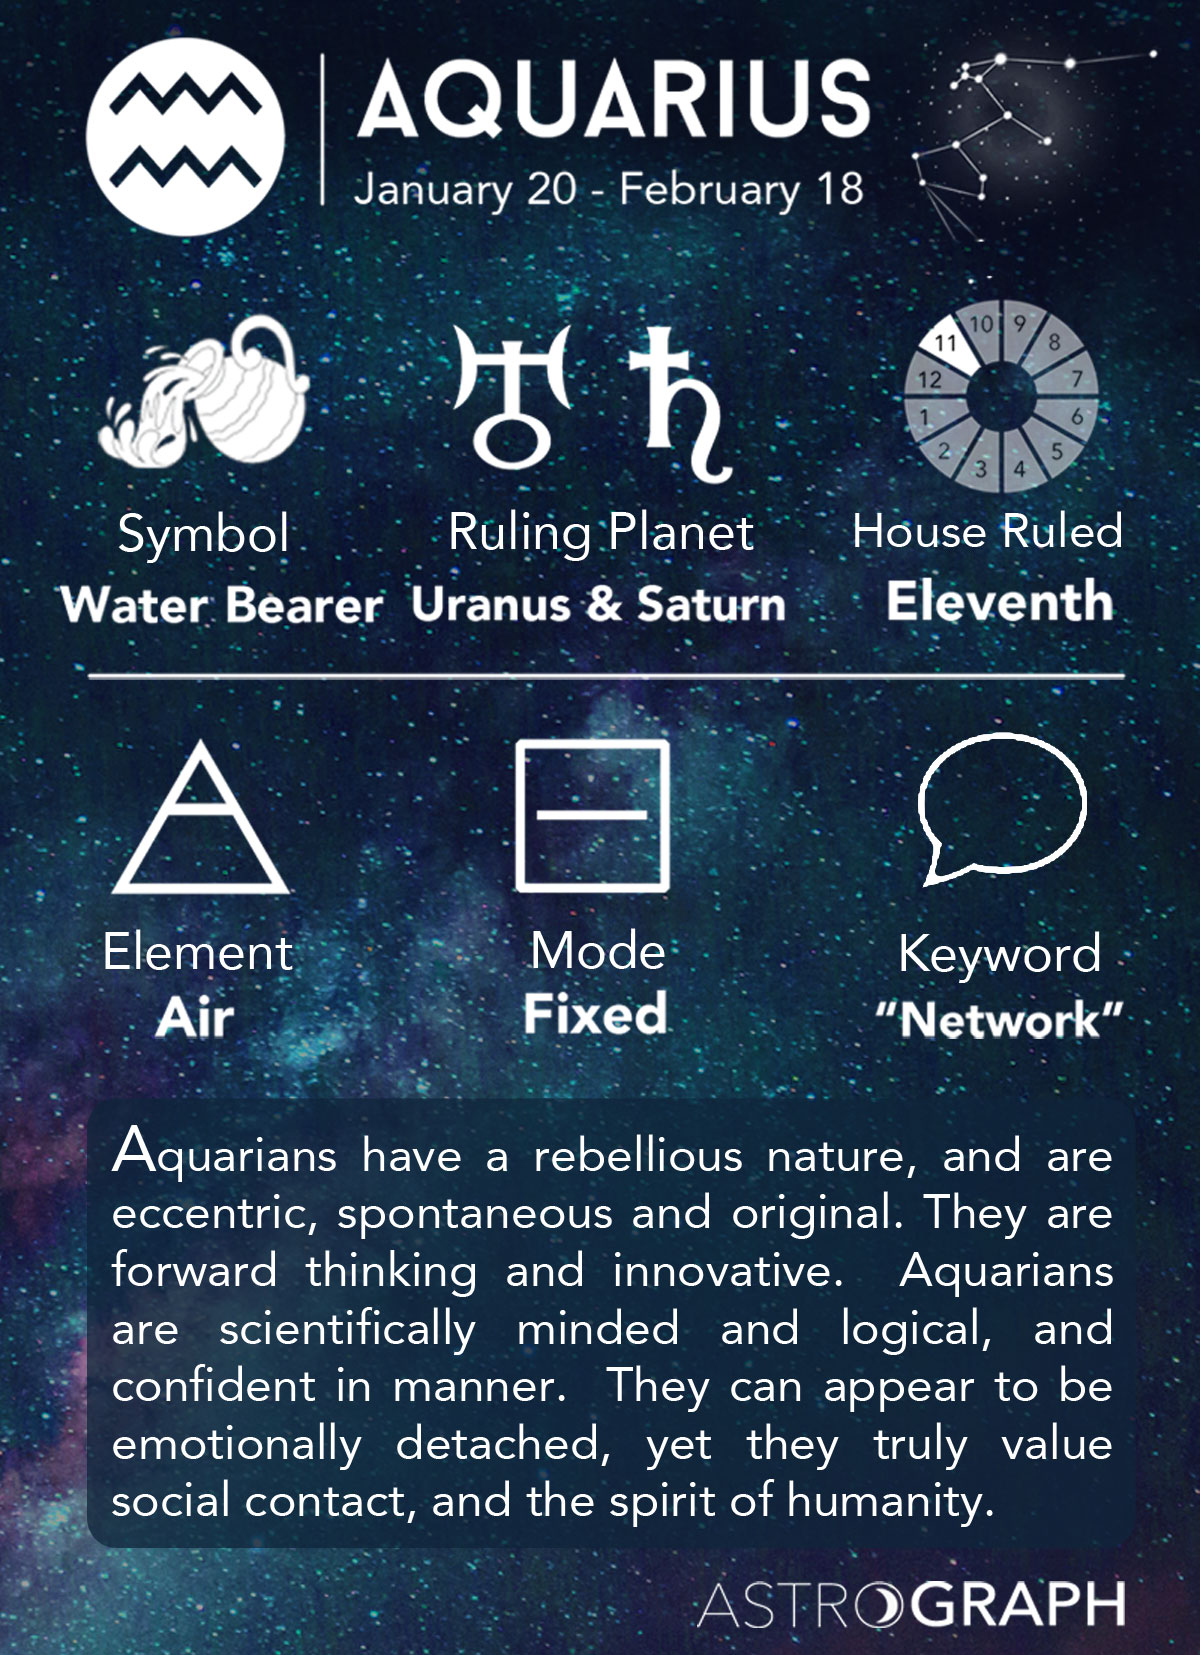 horoscope signs meaning aquarius